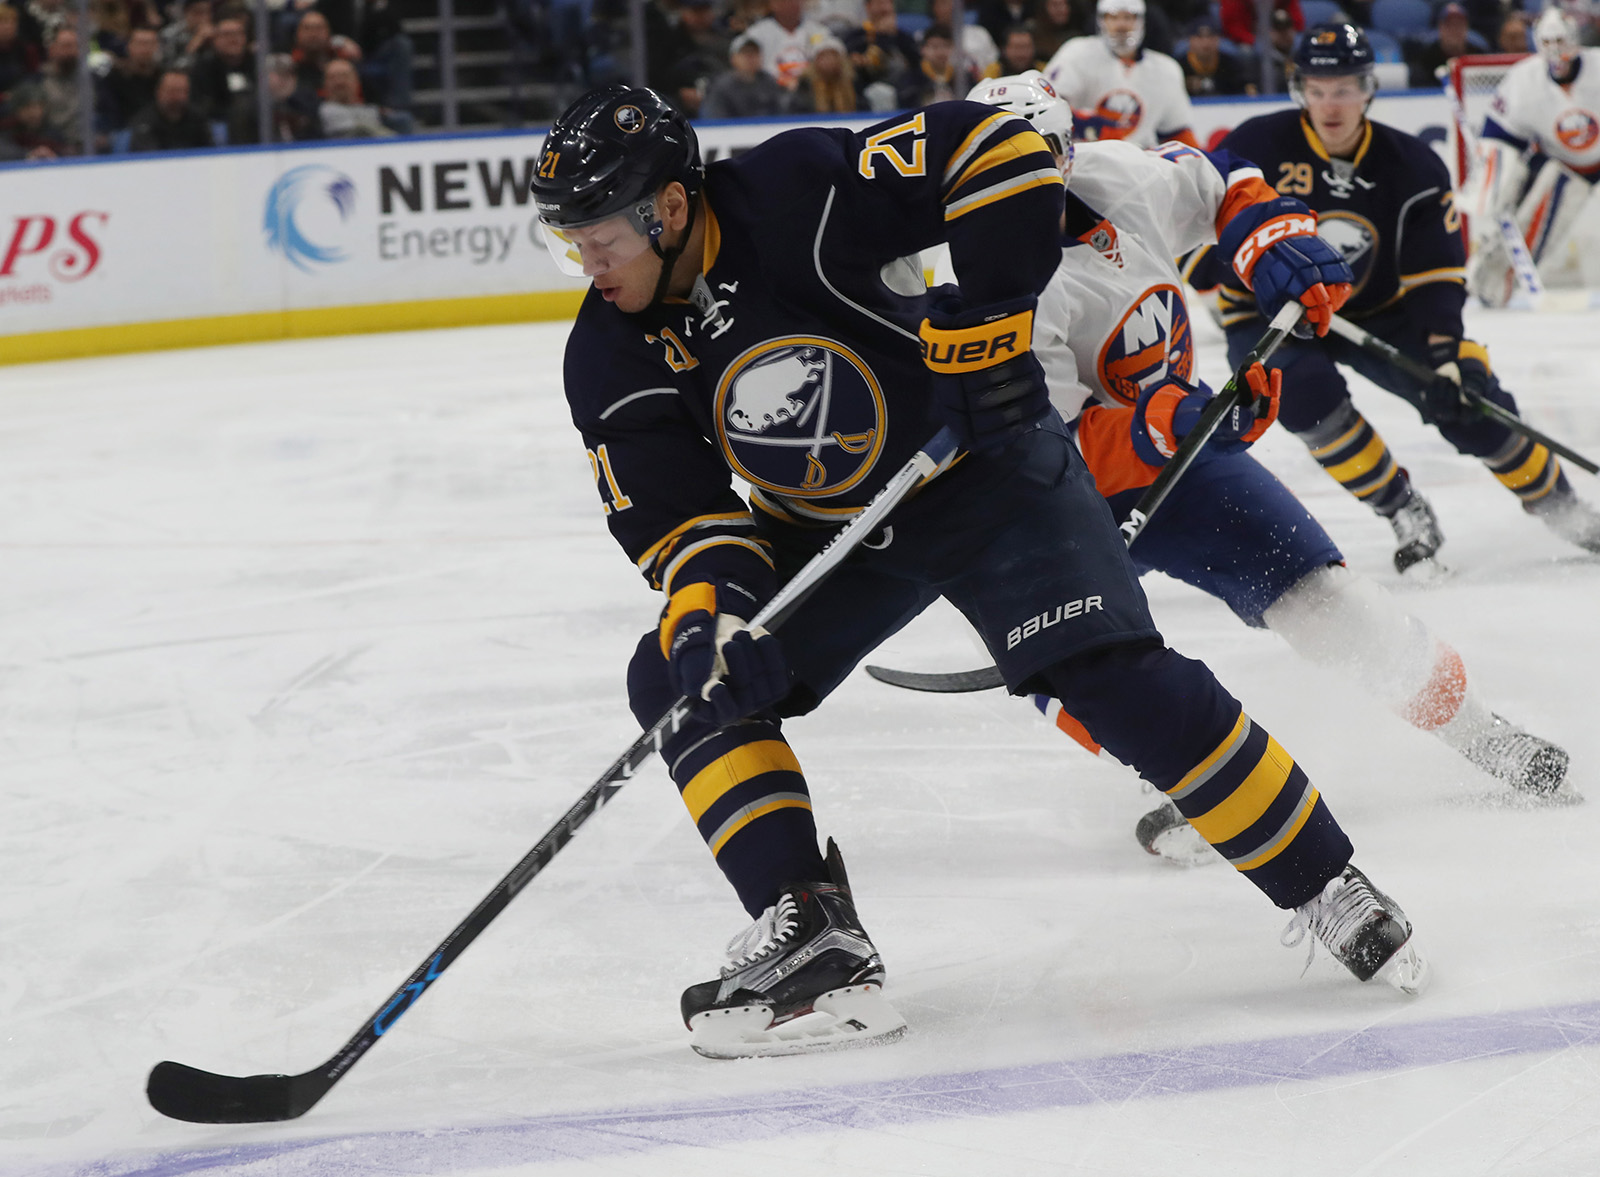 Kyle Okposo earned the assist on Rasmus Ristolainen's overtime winner. (James P. McCoy/Buffalo News).